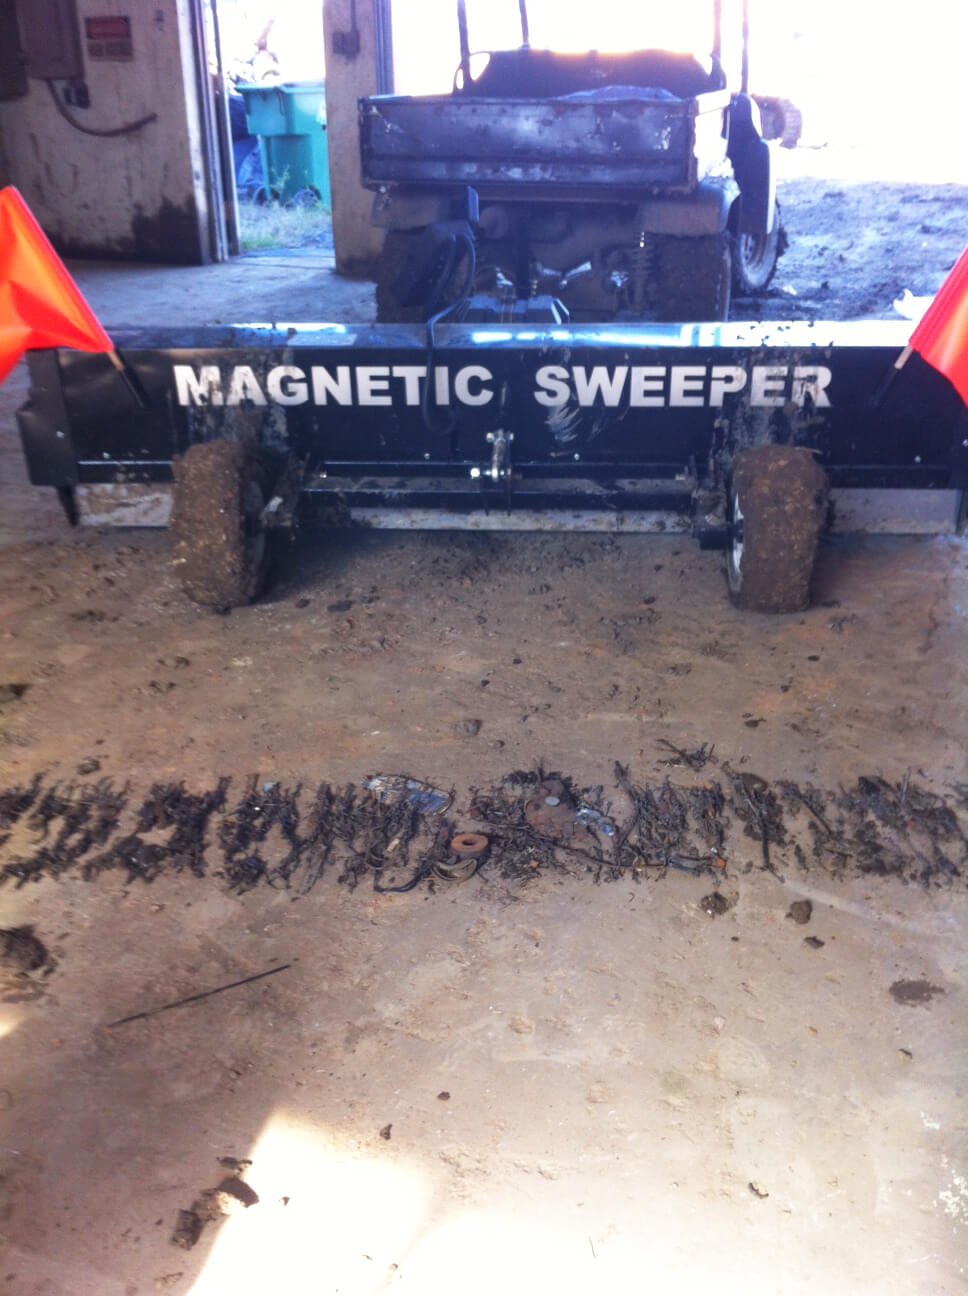 Sabine landfill magnetic sweeper